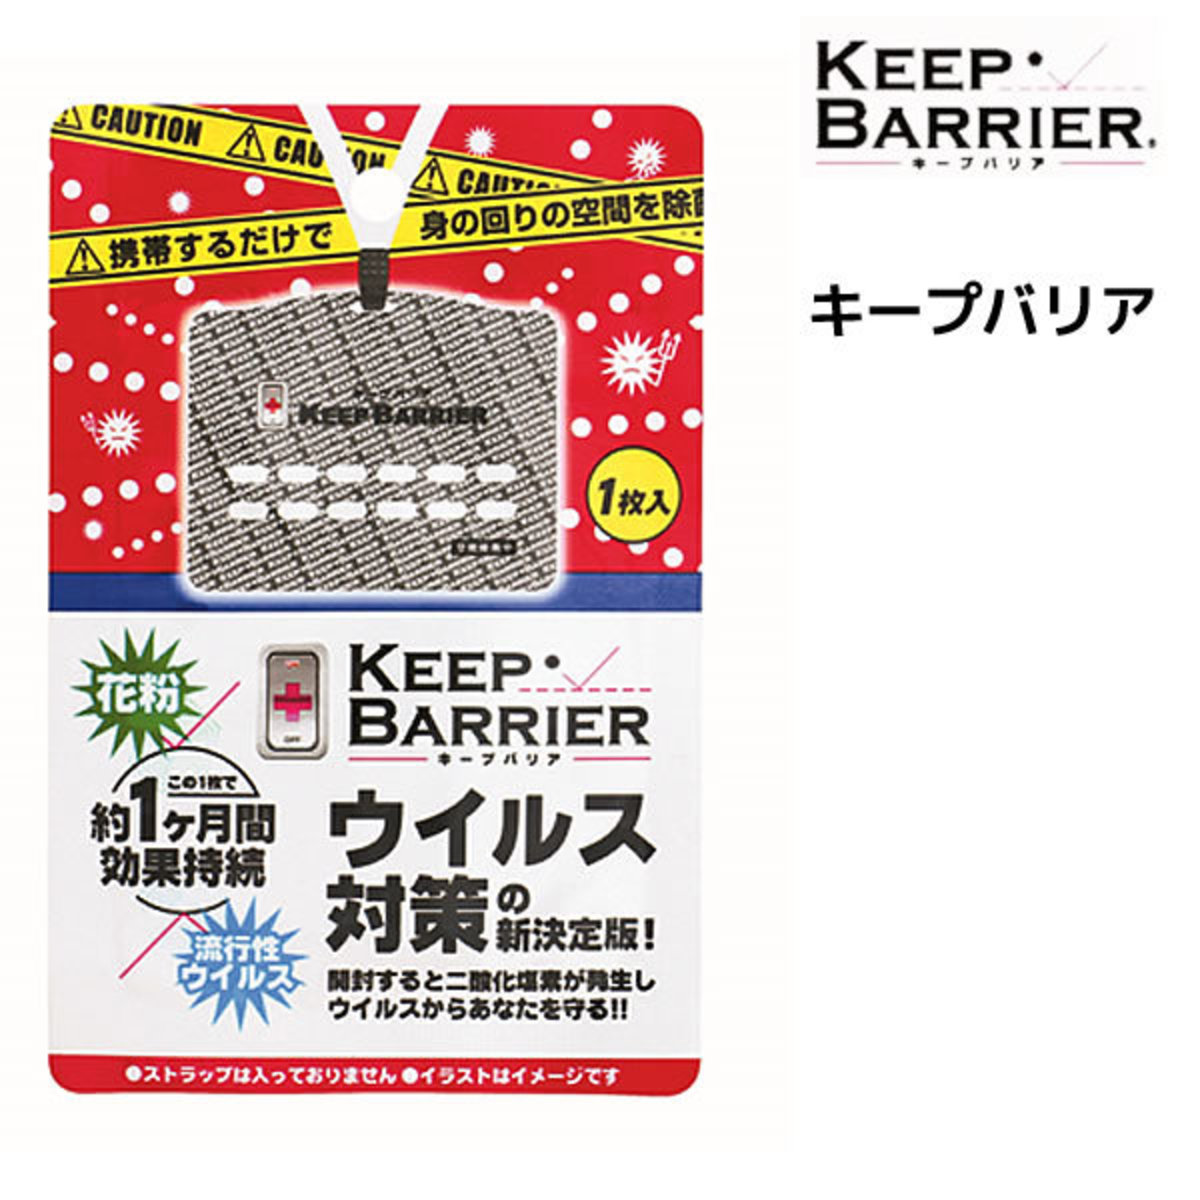 (KEEP BARRIER) Made in Japan KEEP BARRIER Space Decontamination Badge